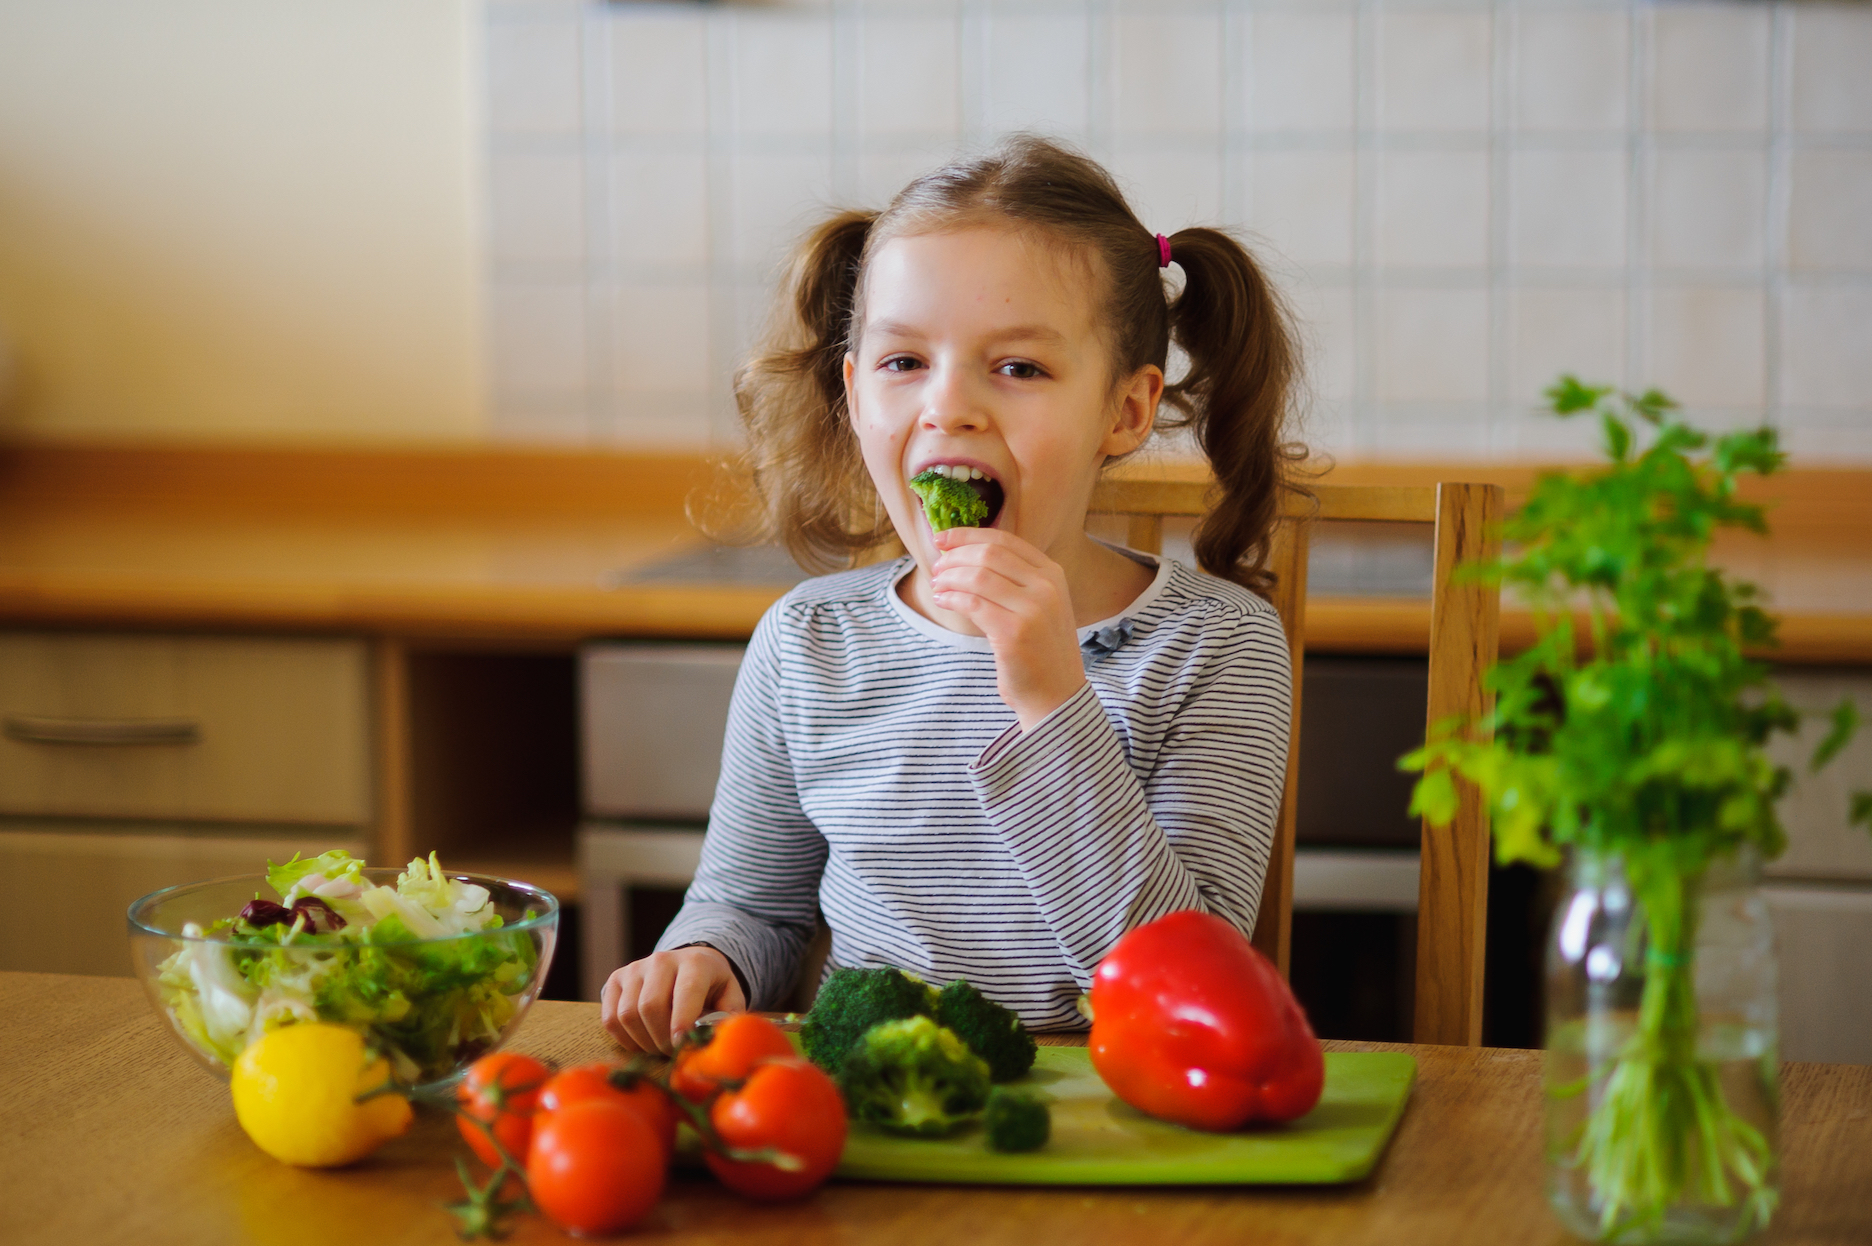 According to new research, healthy eating is linked to kids having better self-esteem and fewer emotional and peer problems.